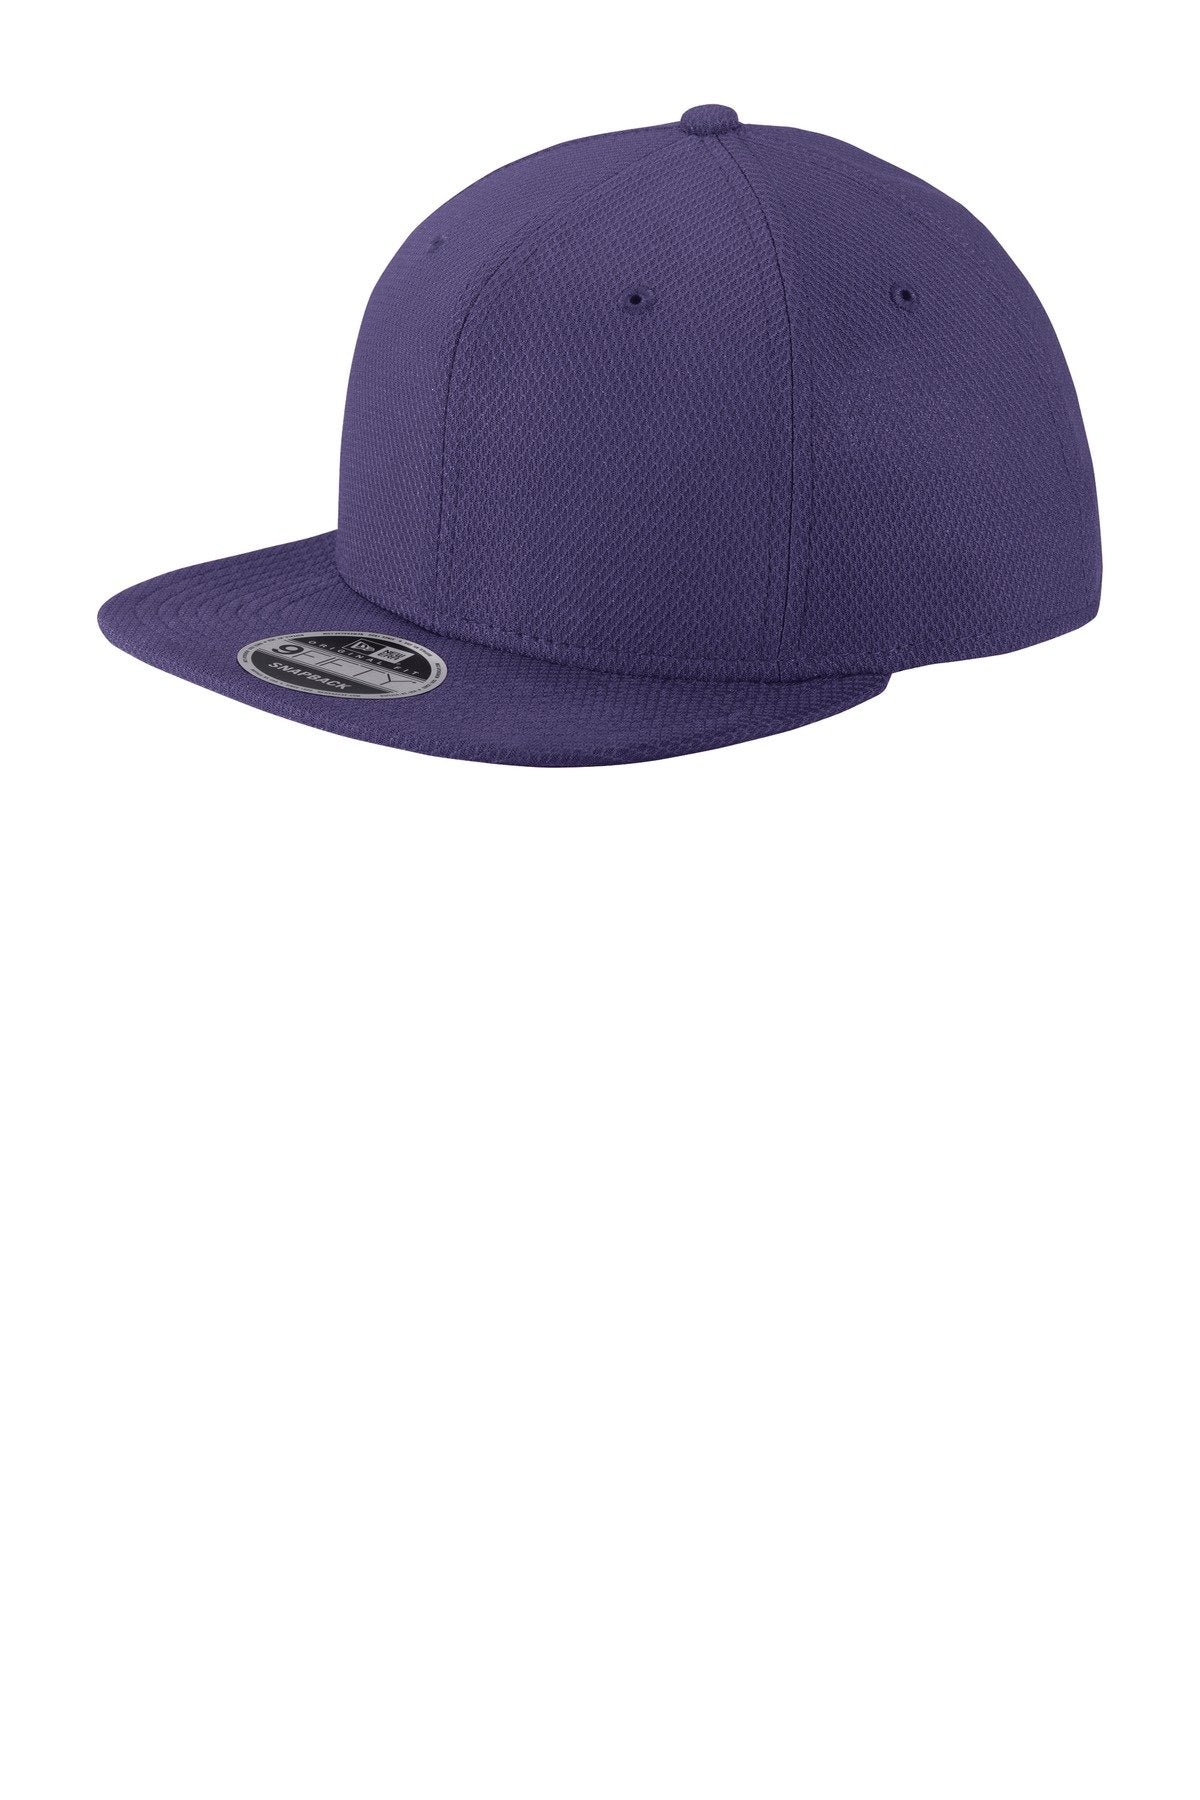 Purple - New Era NE404